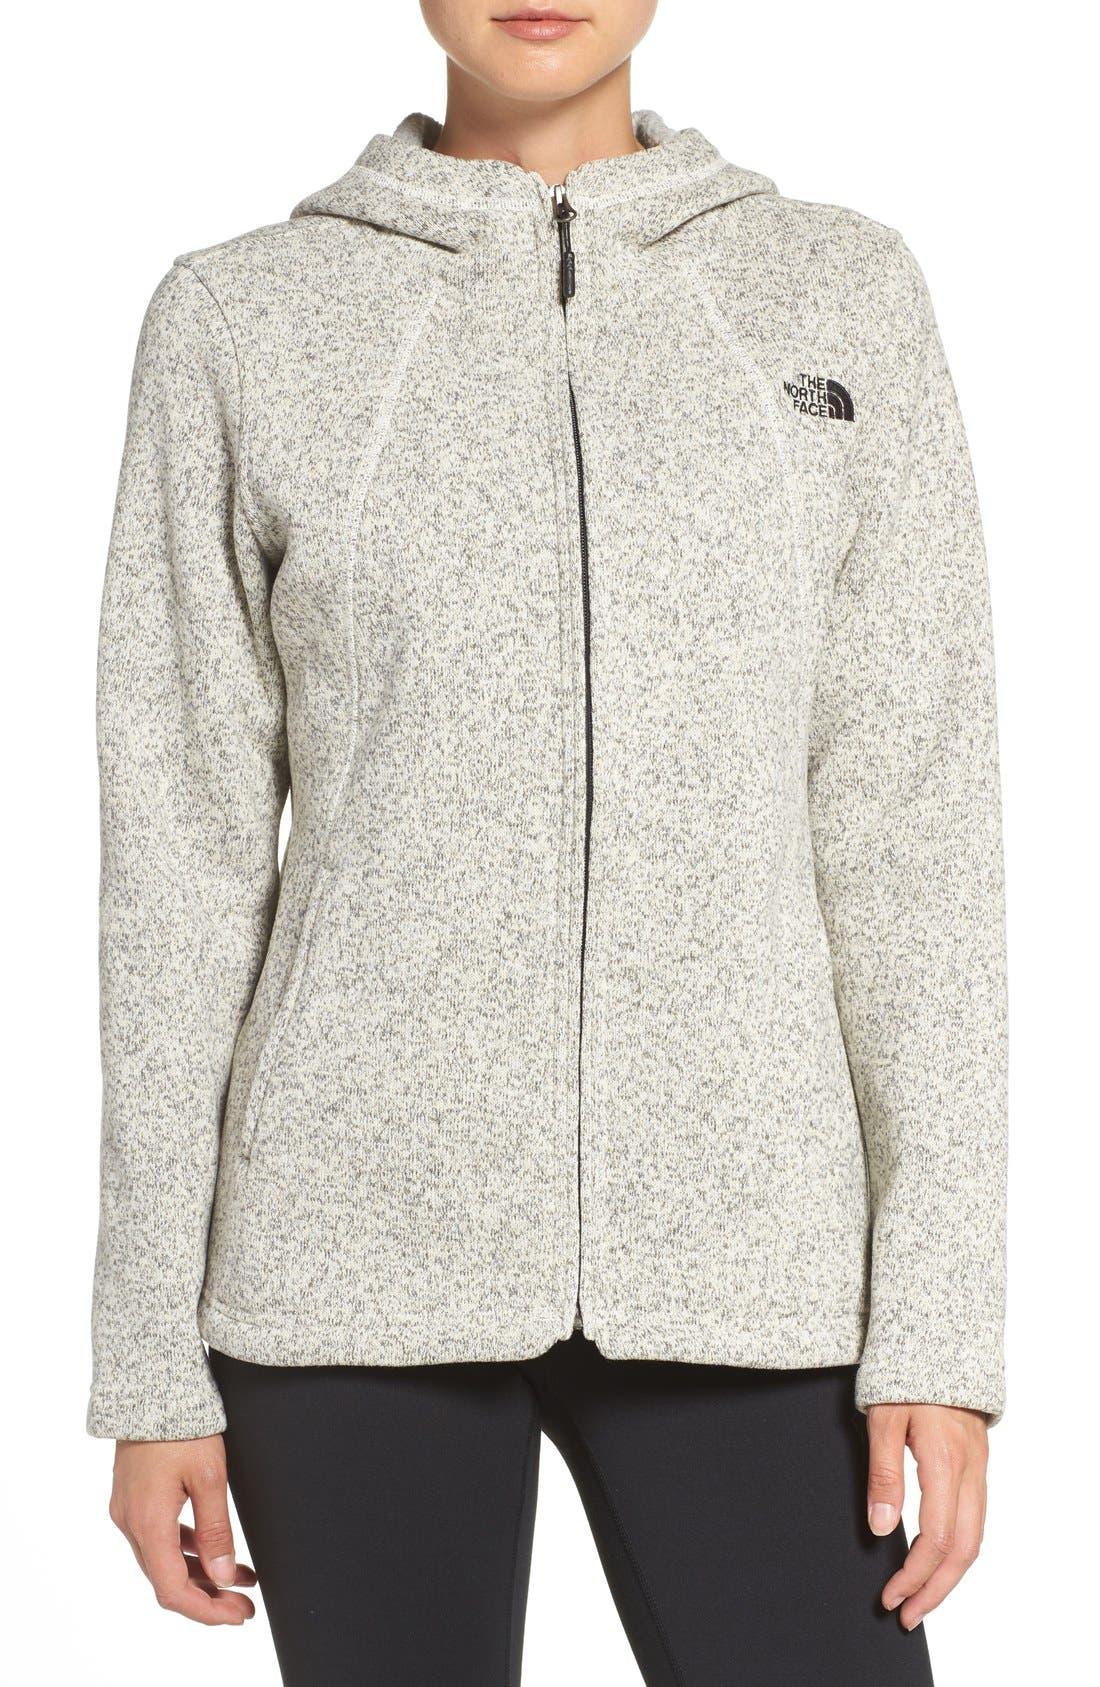 Main Image - The North Face 'Crescent' Fleece Jacket